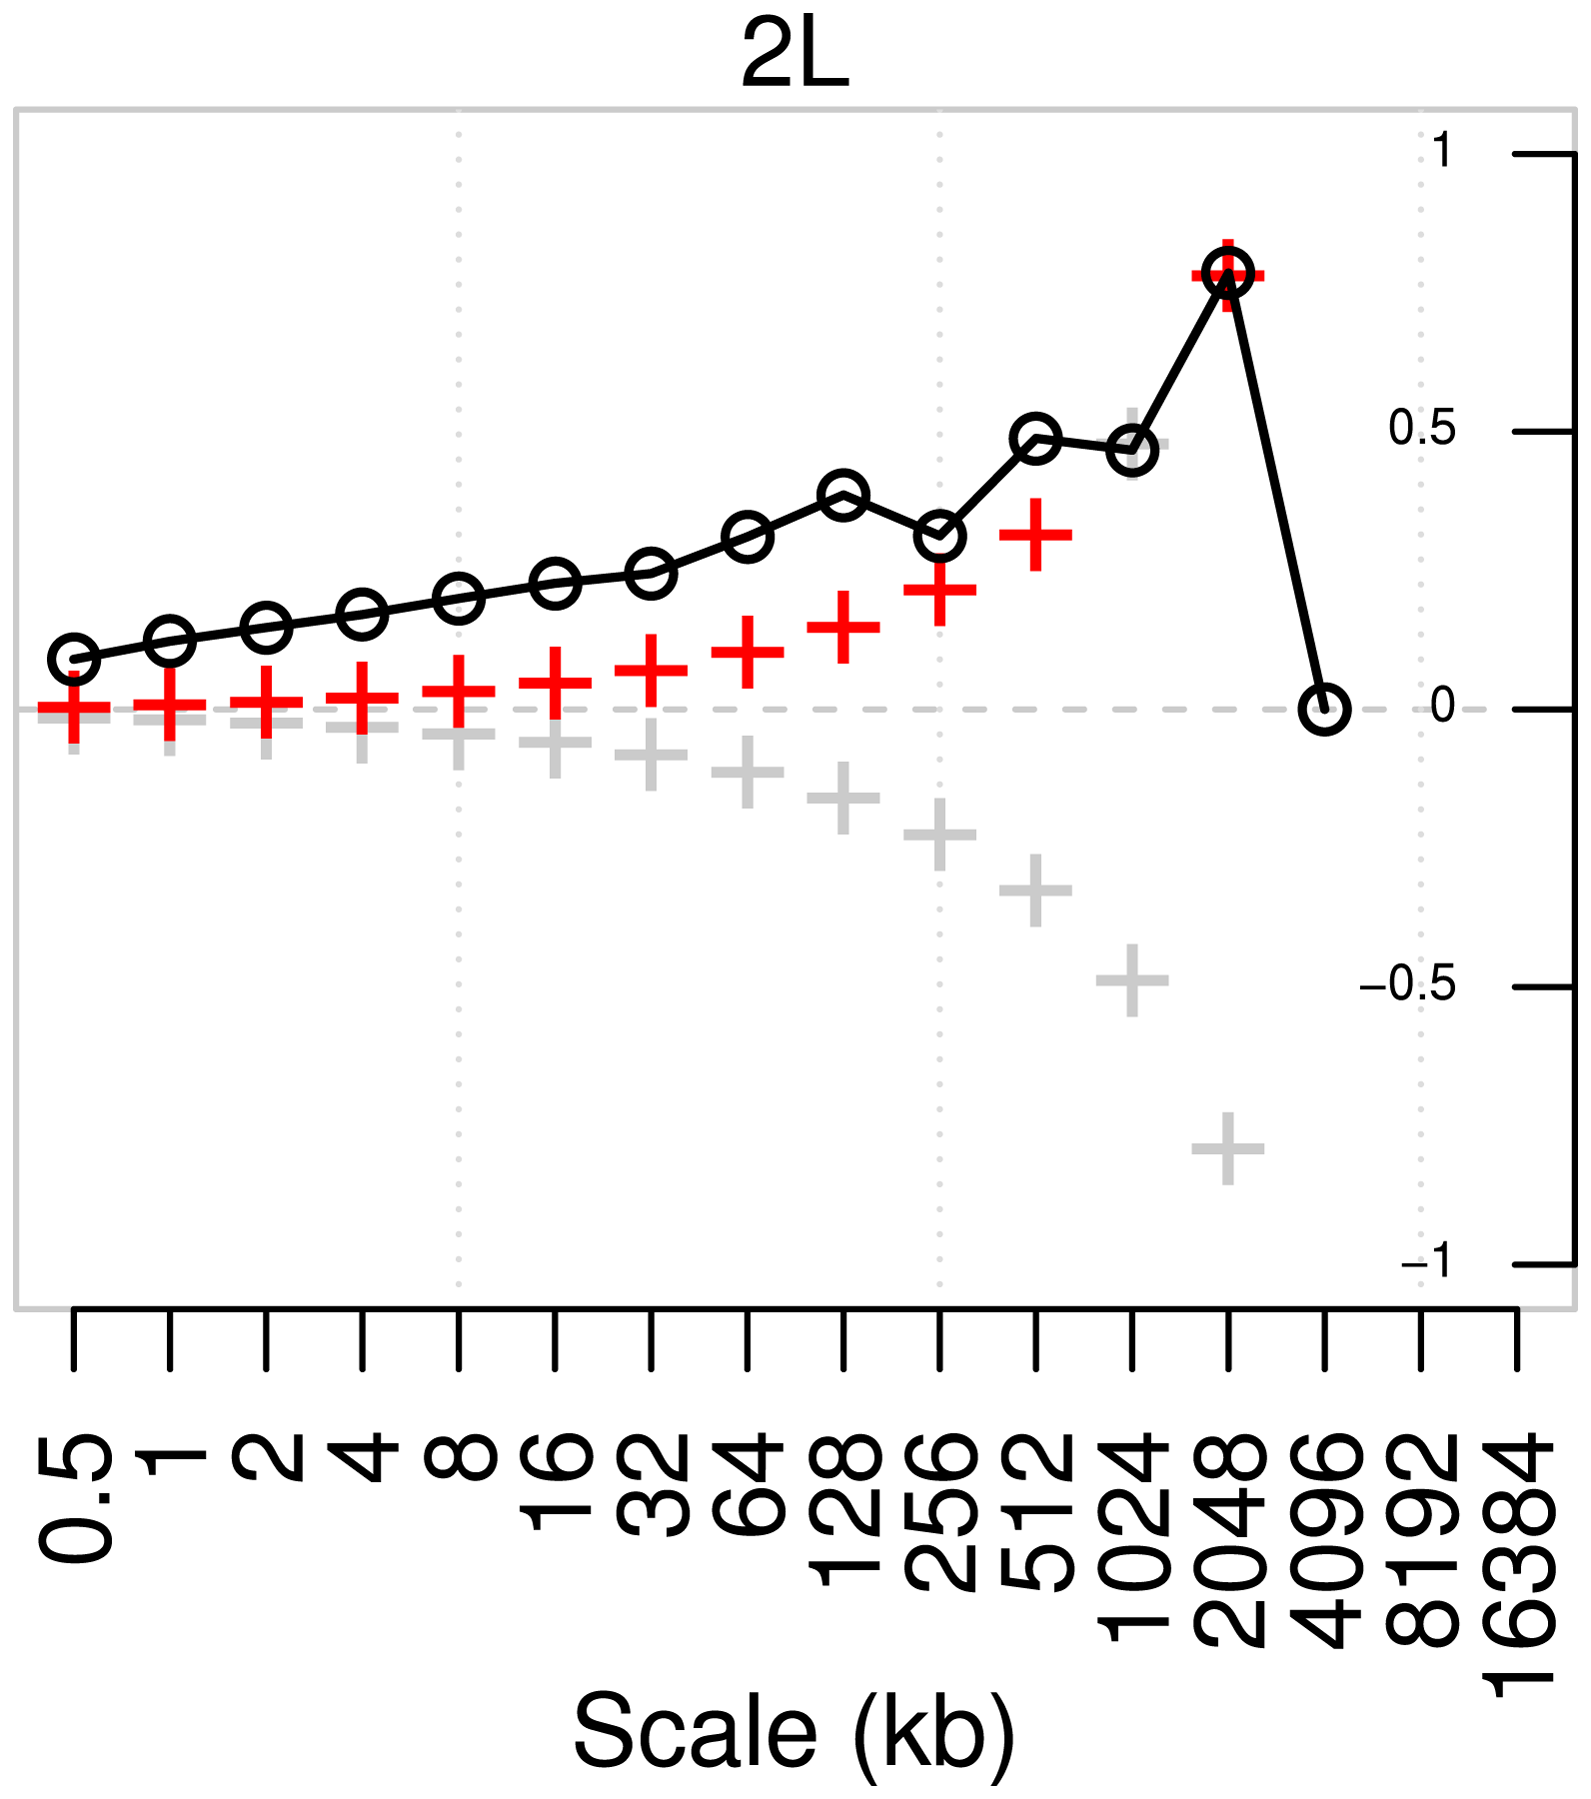 Pairwise correlation of detail wavelet coefficients of RAL and RG recombination maps for chromosome arm 2L.